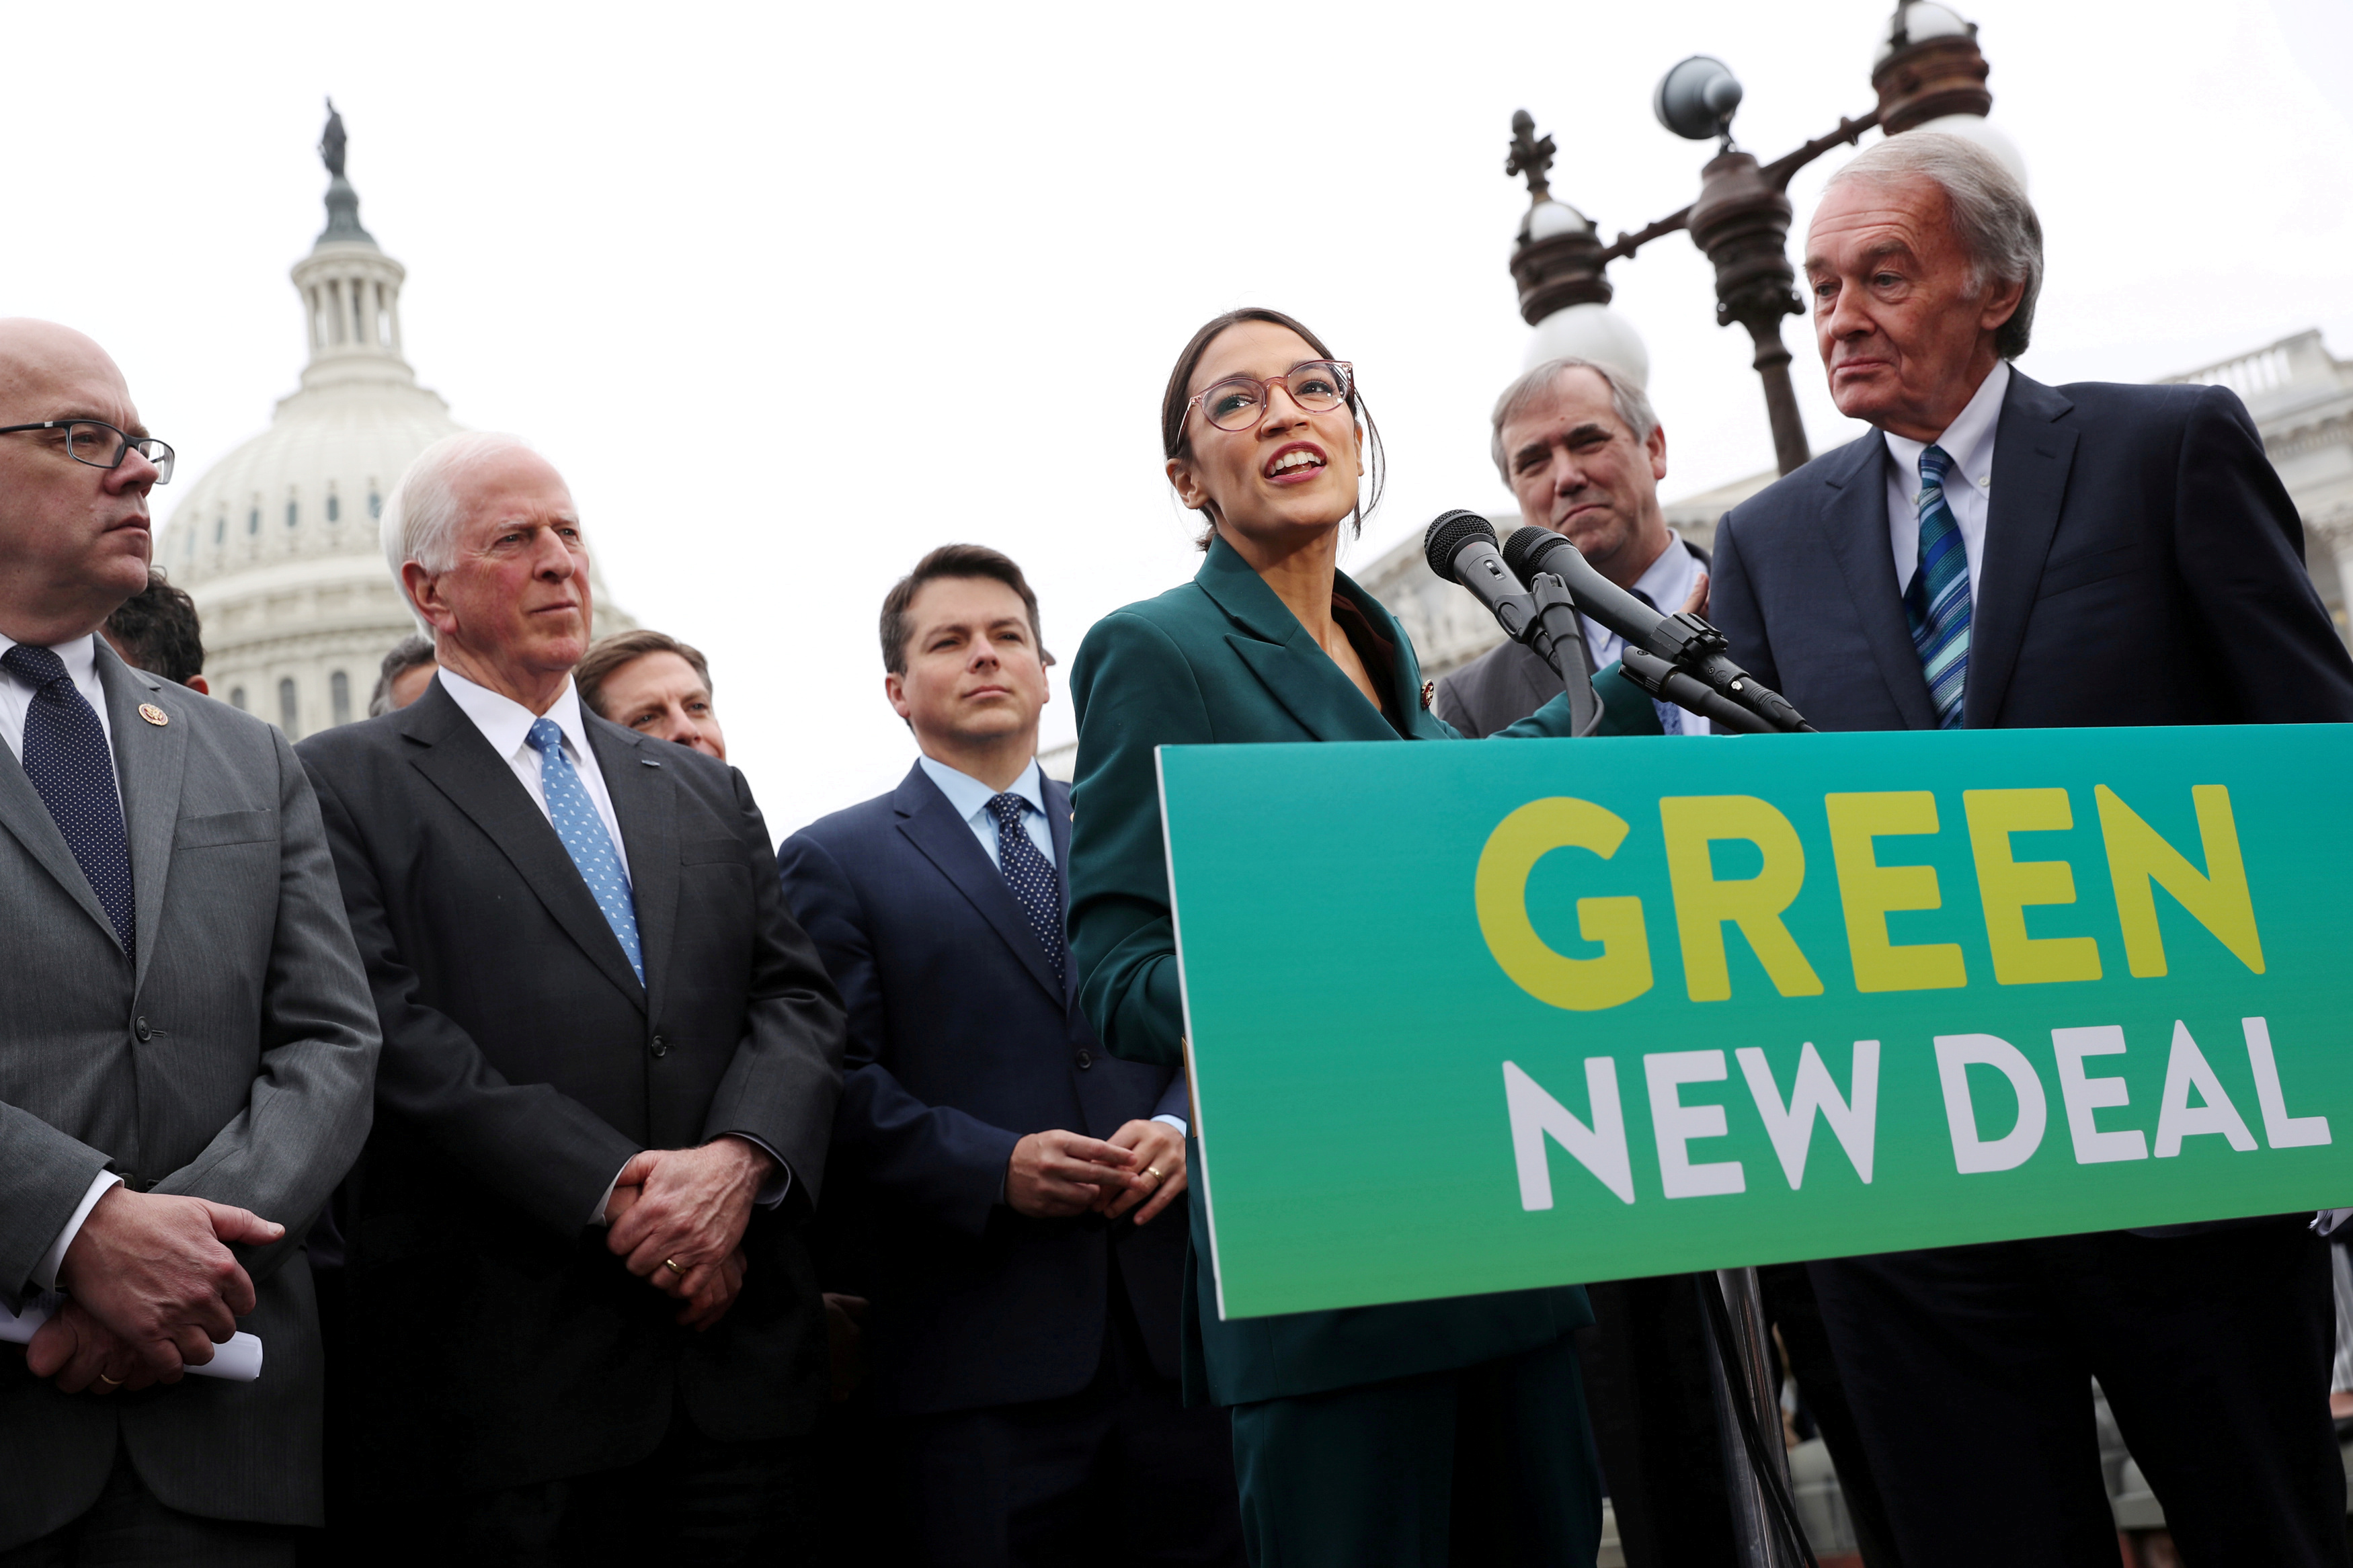 Rep. Alexandria Ocasio-Cortez (D-NY) and Senator Ed Markey, Green New Deal